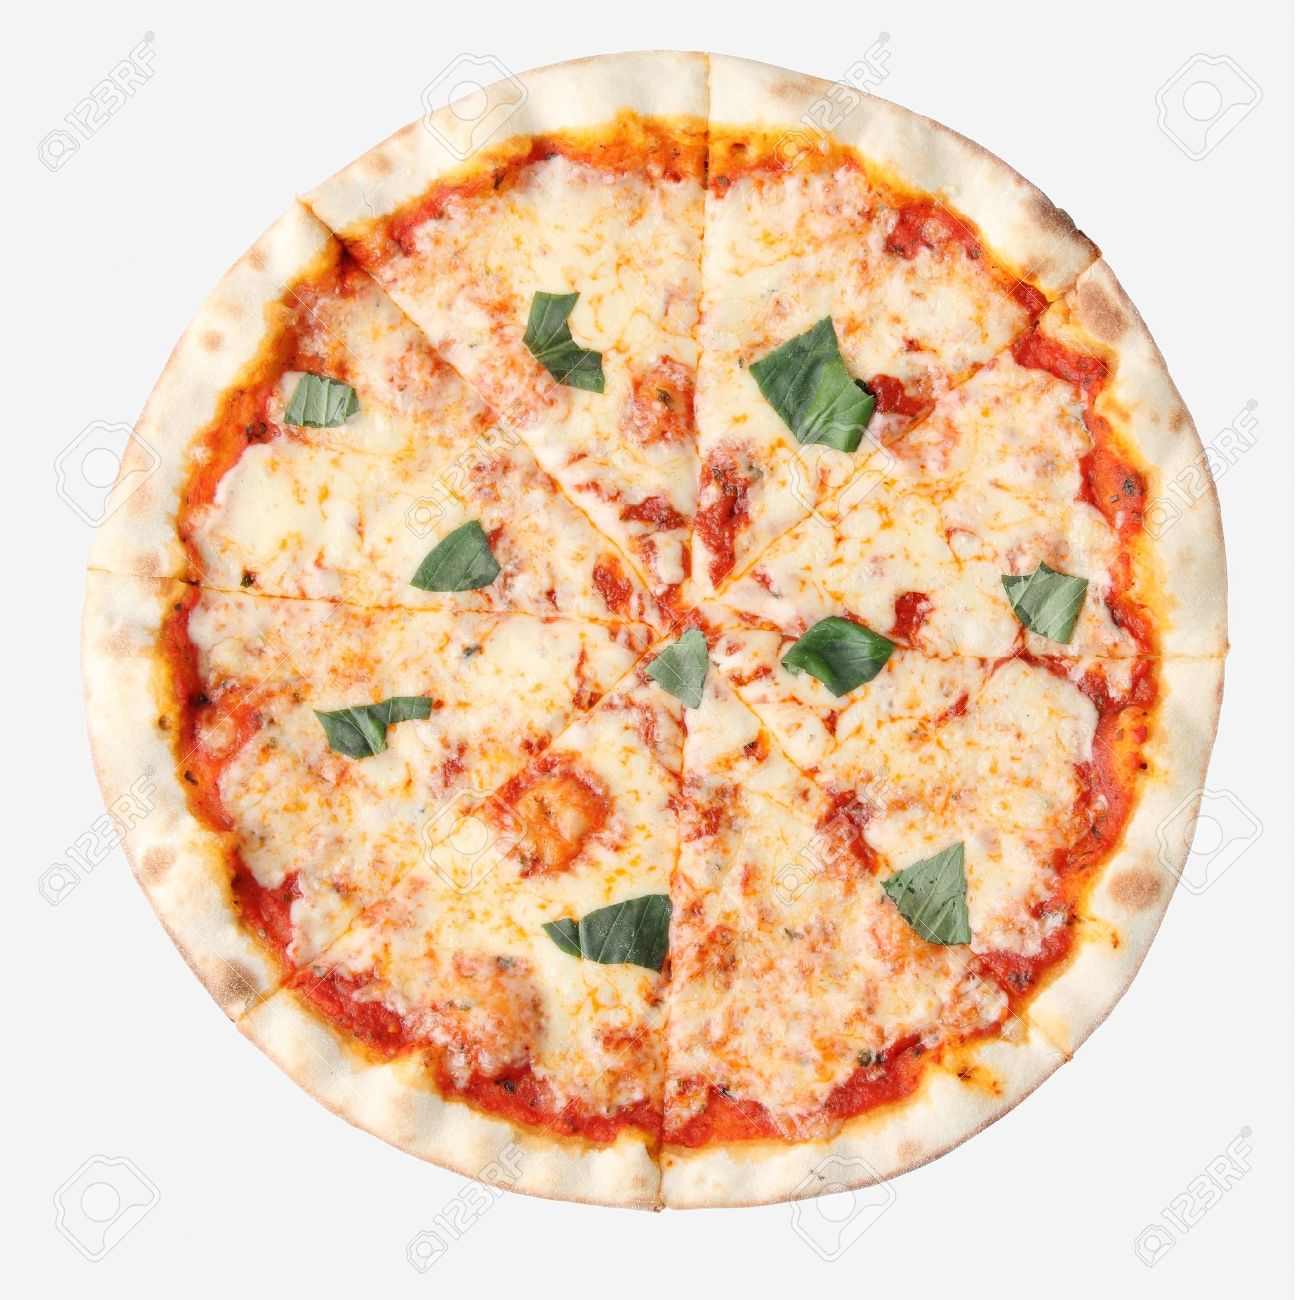 Pizza Margherita Isolated Over White Background Top View Stock Photo